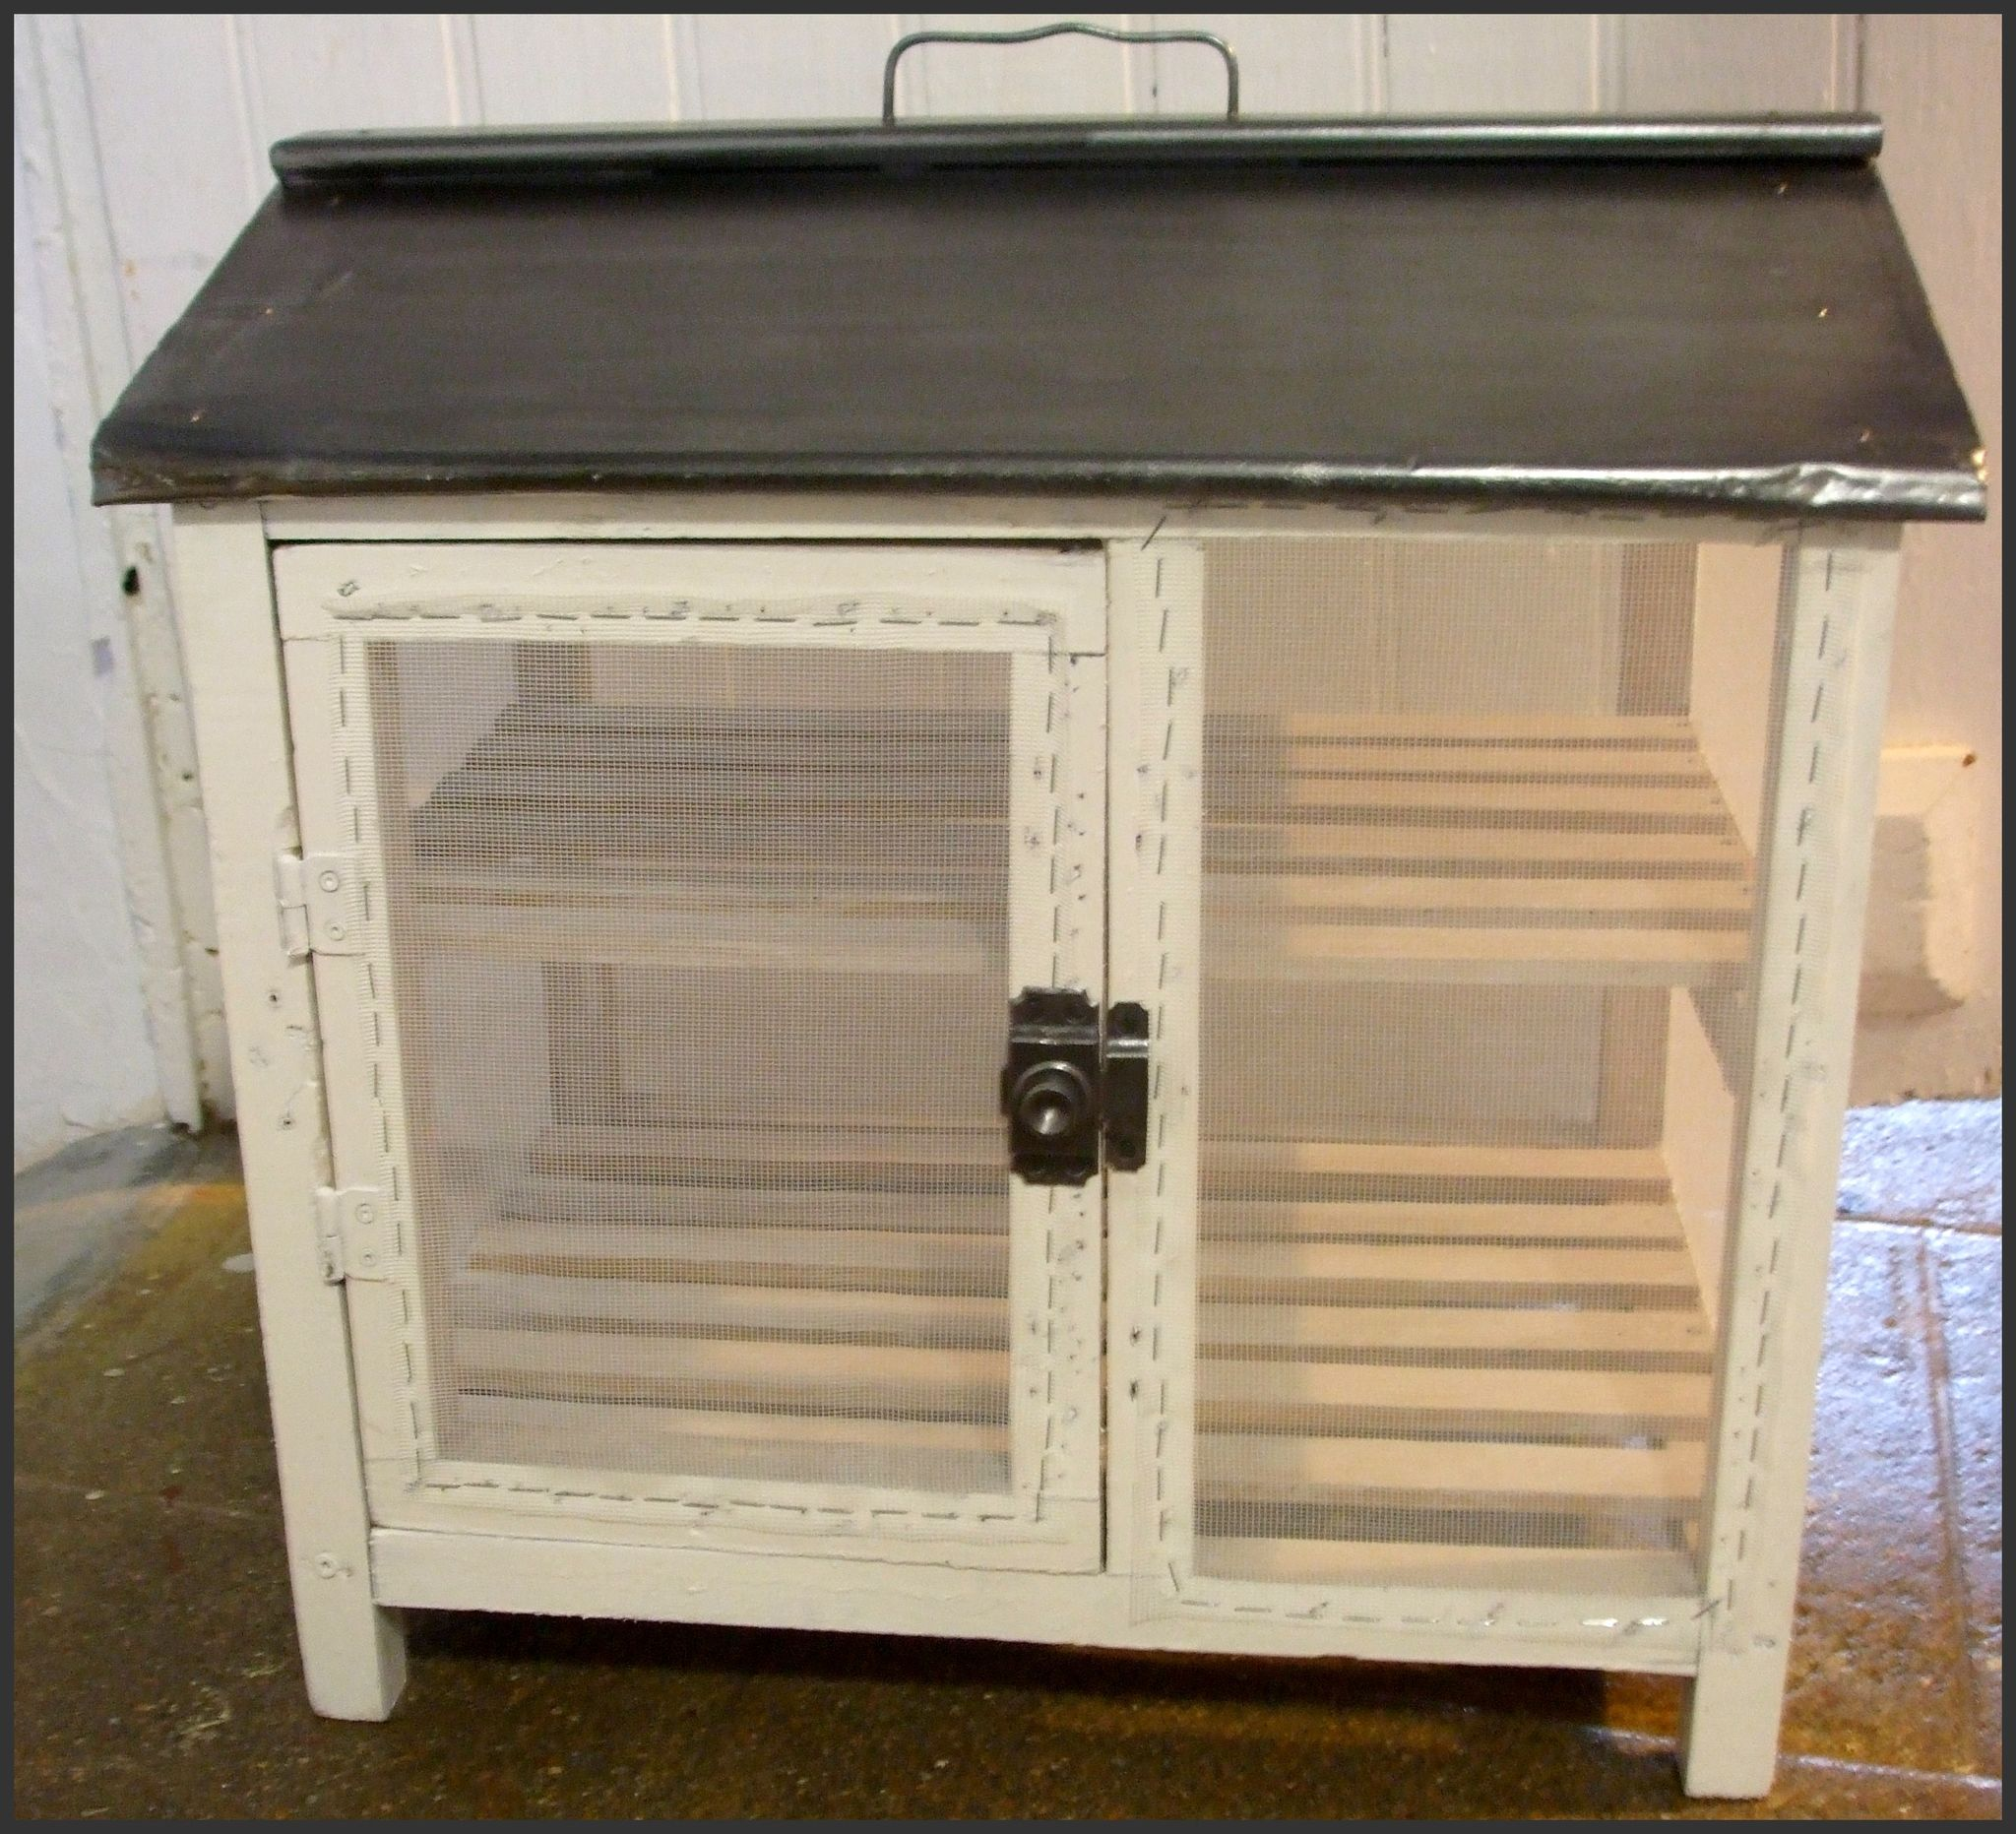 Relooking Dune Ancienne Cage Fromage AVANT Amour Du